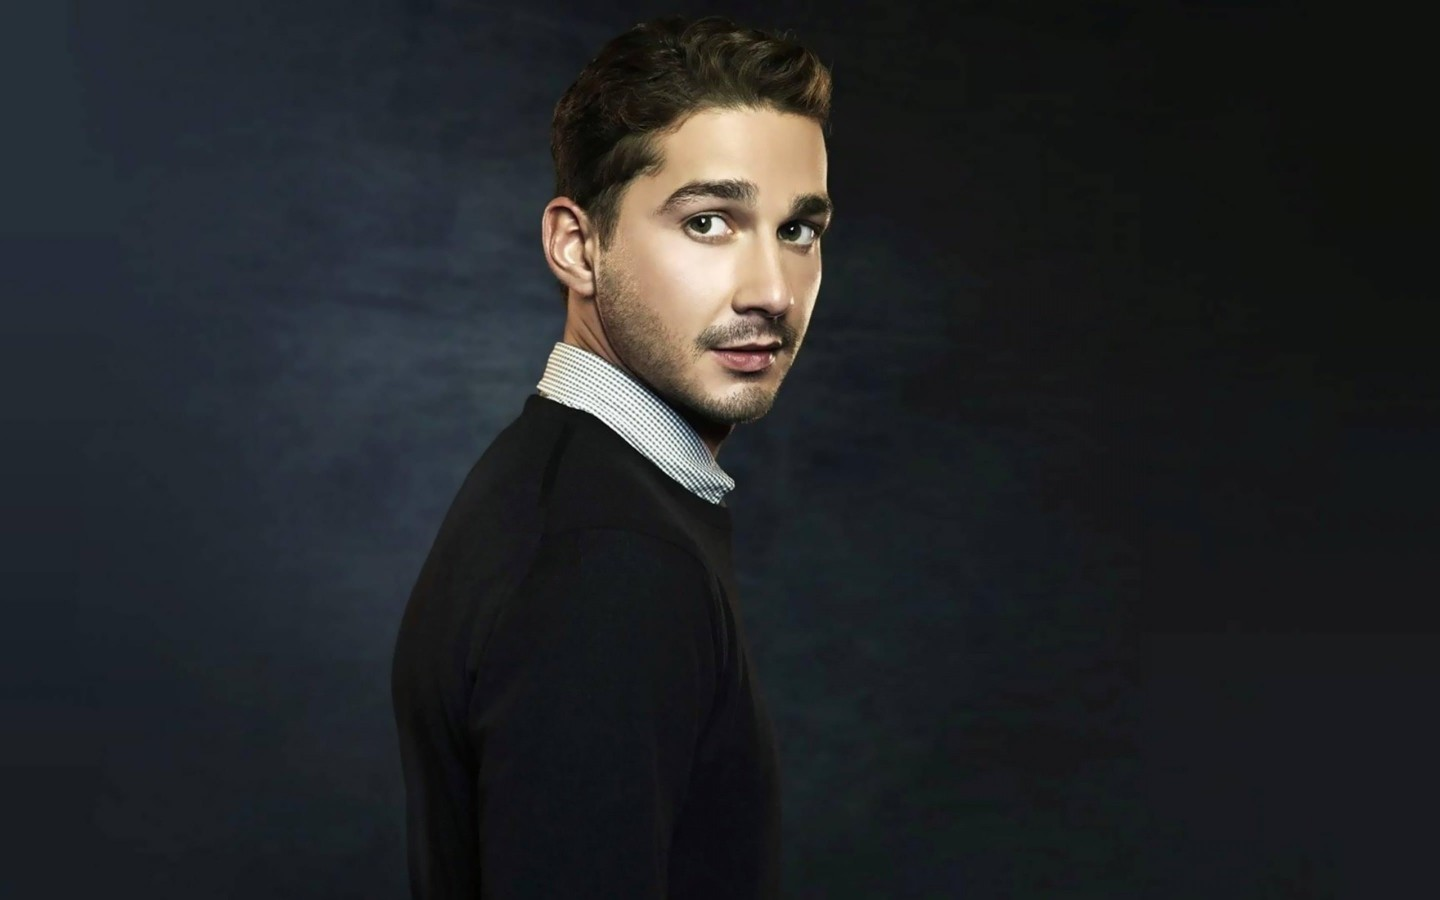 Shia Labeouf Wallpaper for Desktop 1440x900